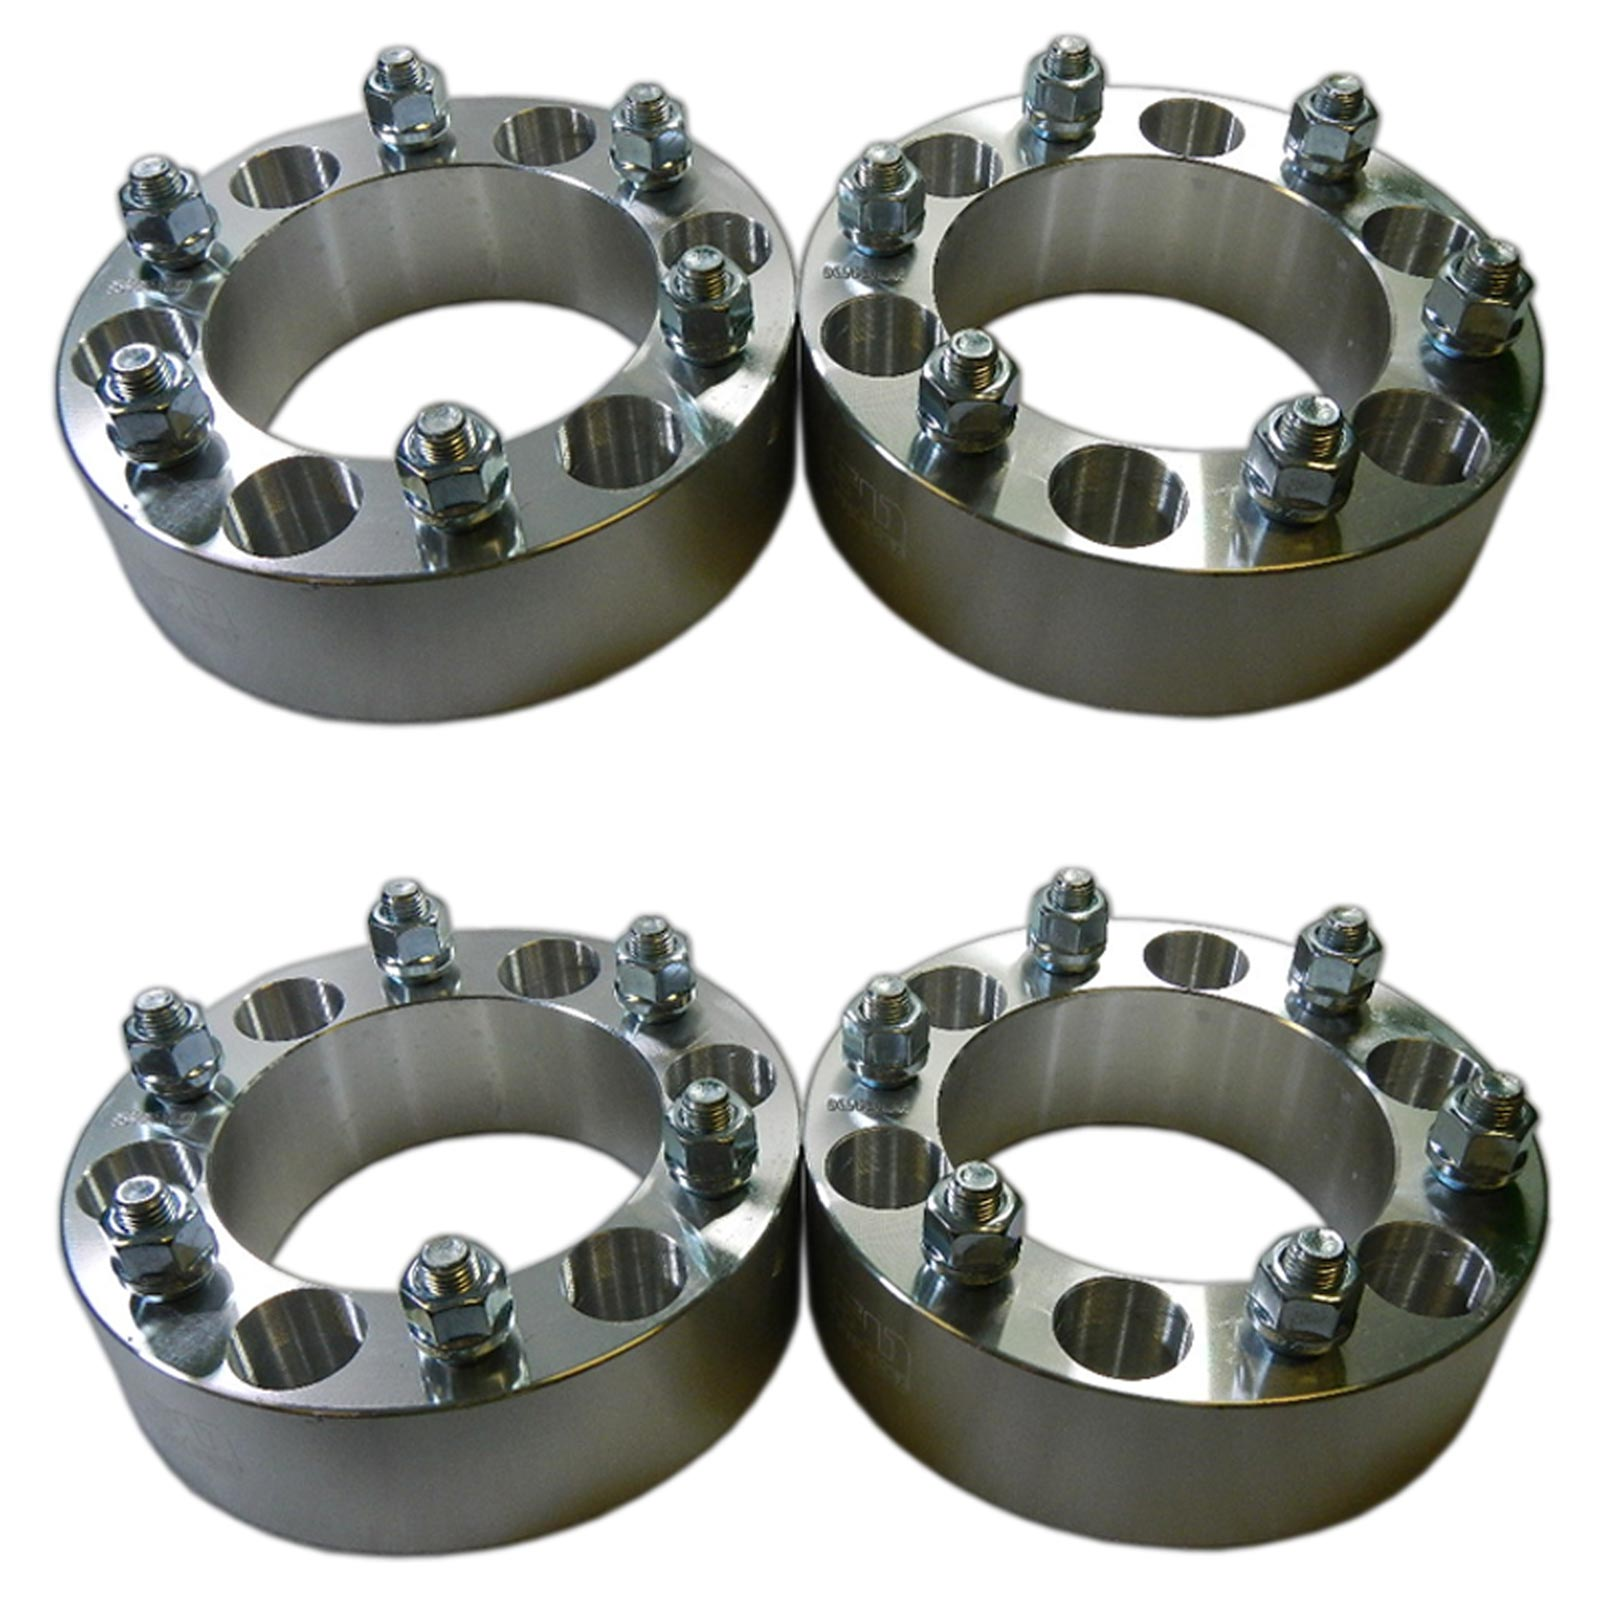 "Four 6x5.5 139.7 Wheel Spacers 2"" Thick 12mm Lug 4Runner"